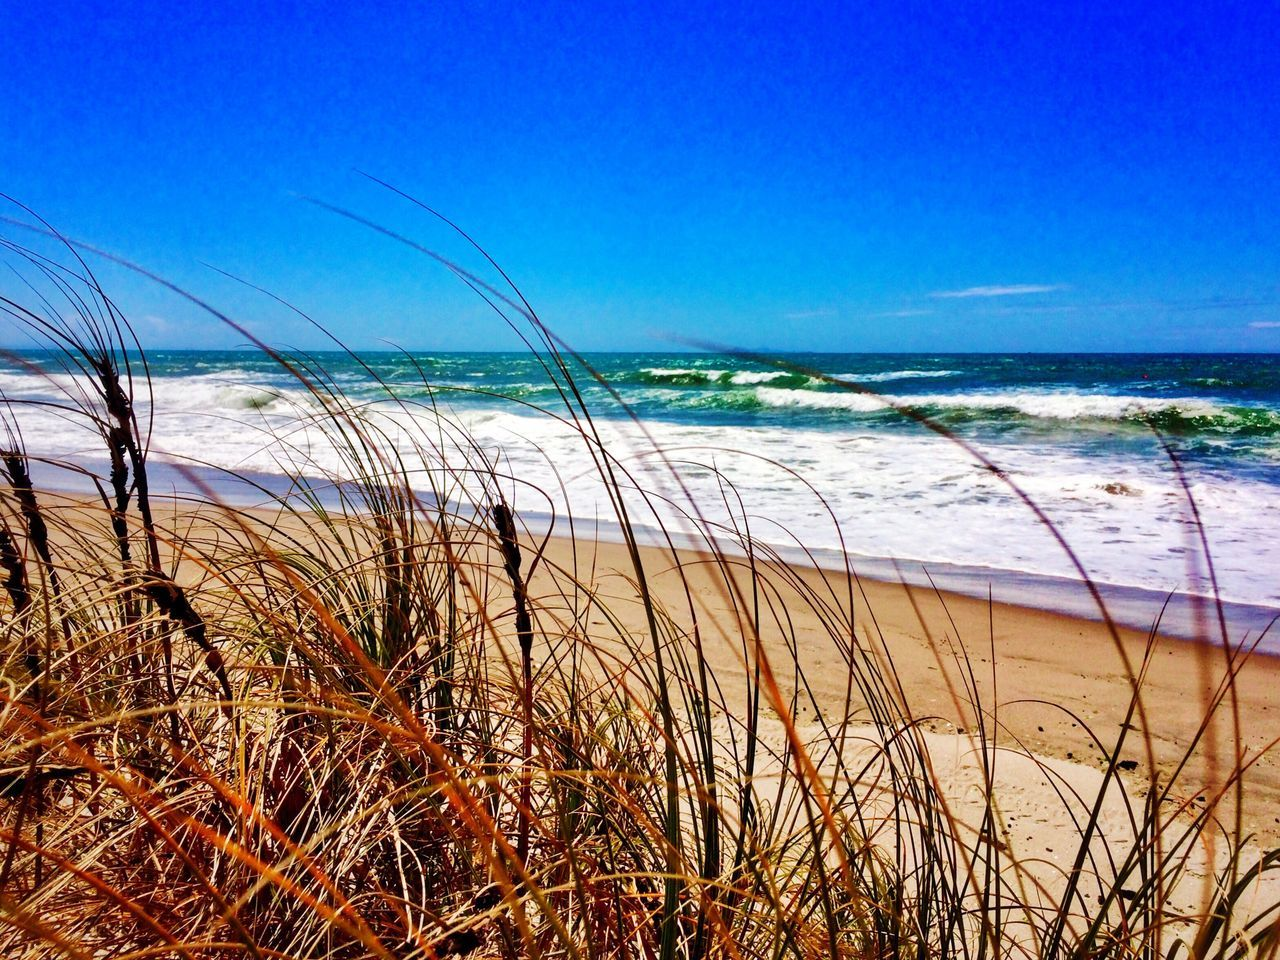 sea, water, beach, nature, tranquil scene, beauty in nature, scenics, tranquility, sand, horizon over water, marram grass, grass, outdoors, blue, sky, no people, day, plant, growth, travel destinations, vacations, wave